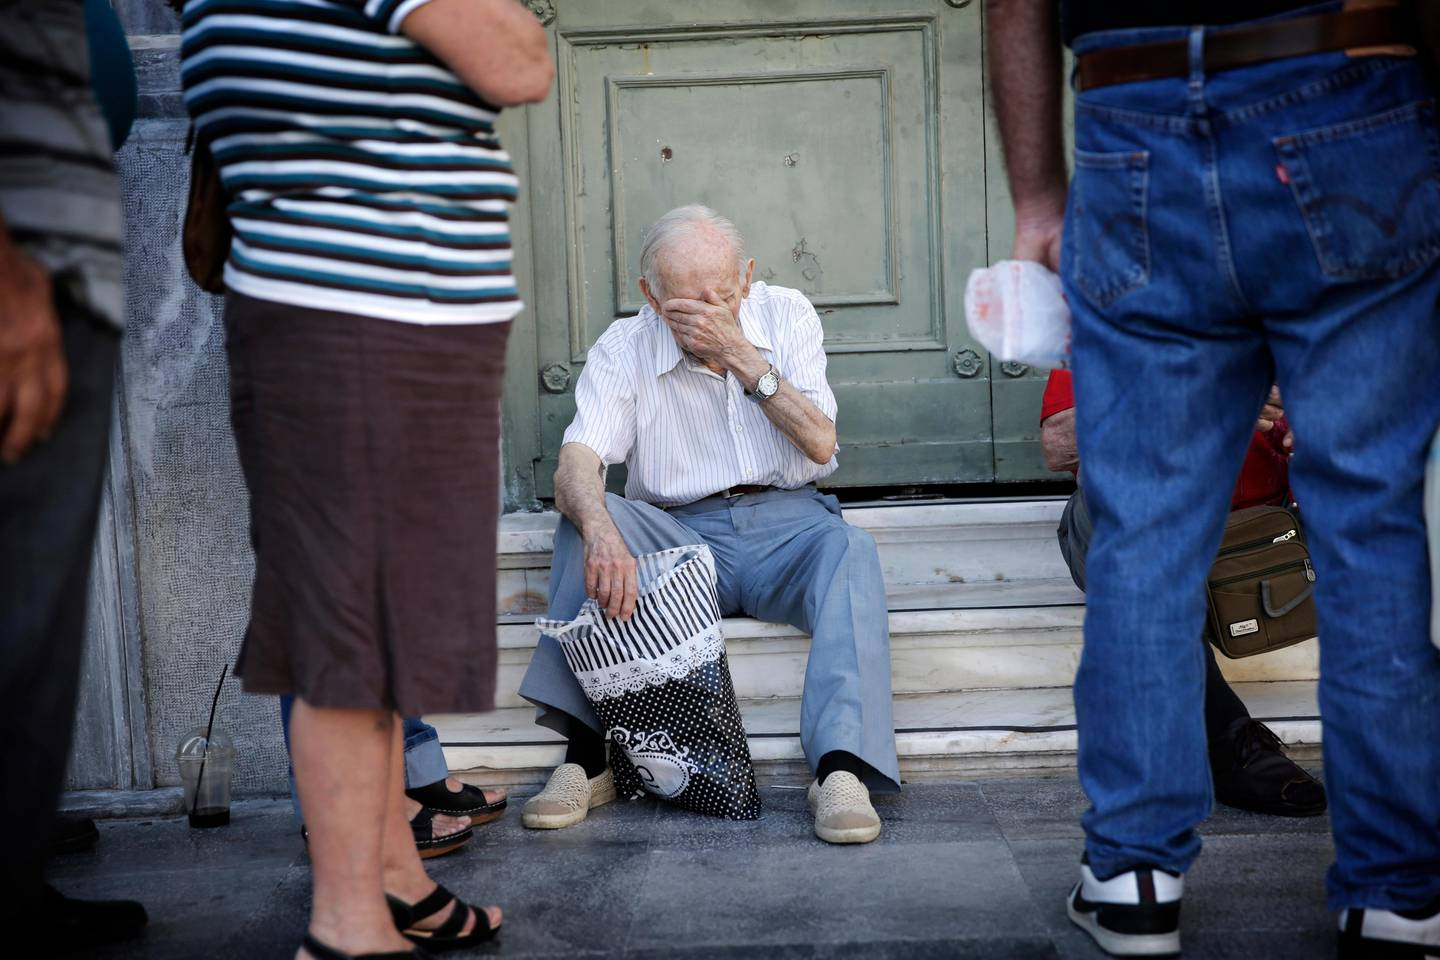 Pensioners wait to enter a National Bank of Greece SA bank branch to collect their pension payments in Athens, Greece, on Friday, July 17, 2015. Germany's Parliament is set to ratify bridge financing and the start of talks for a three-year rescue plan. Photographer: Matthew Lloyd/Bloomberg